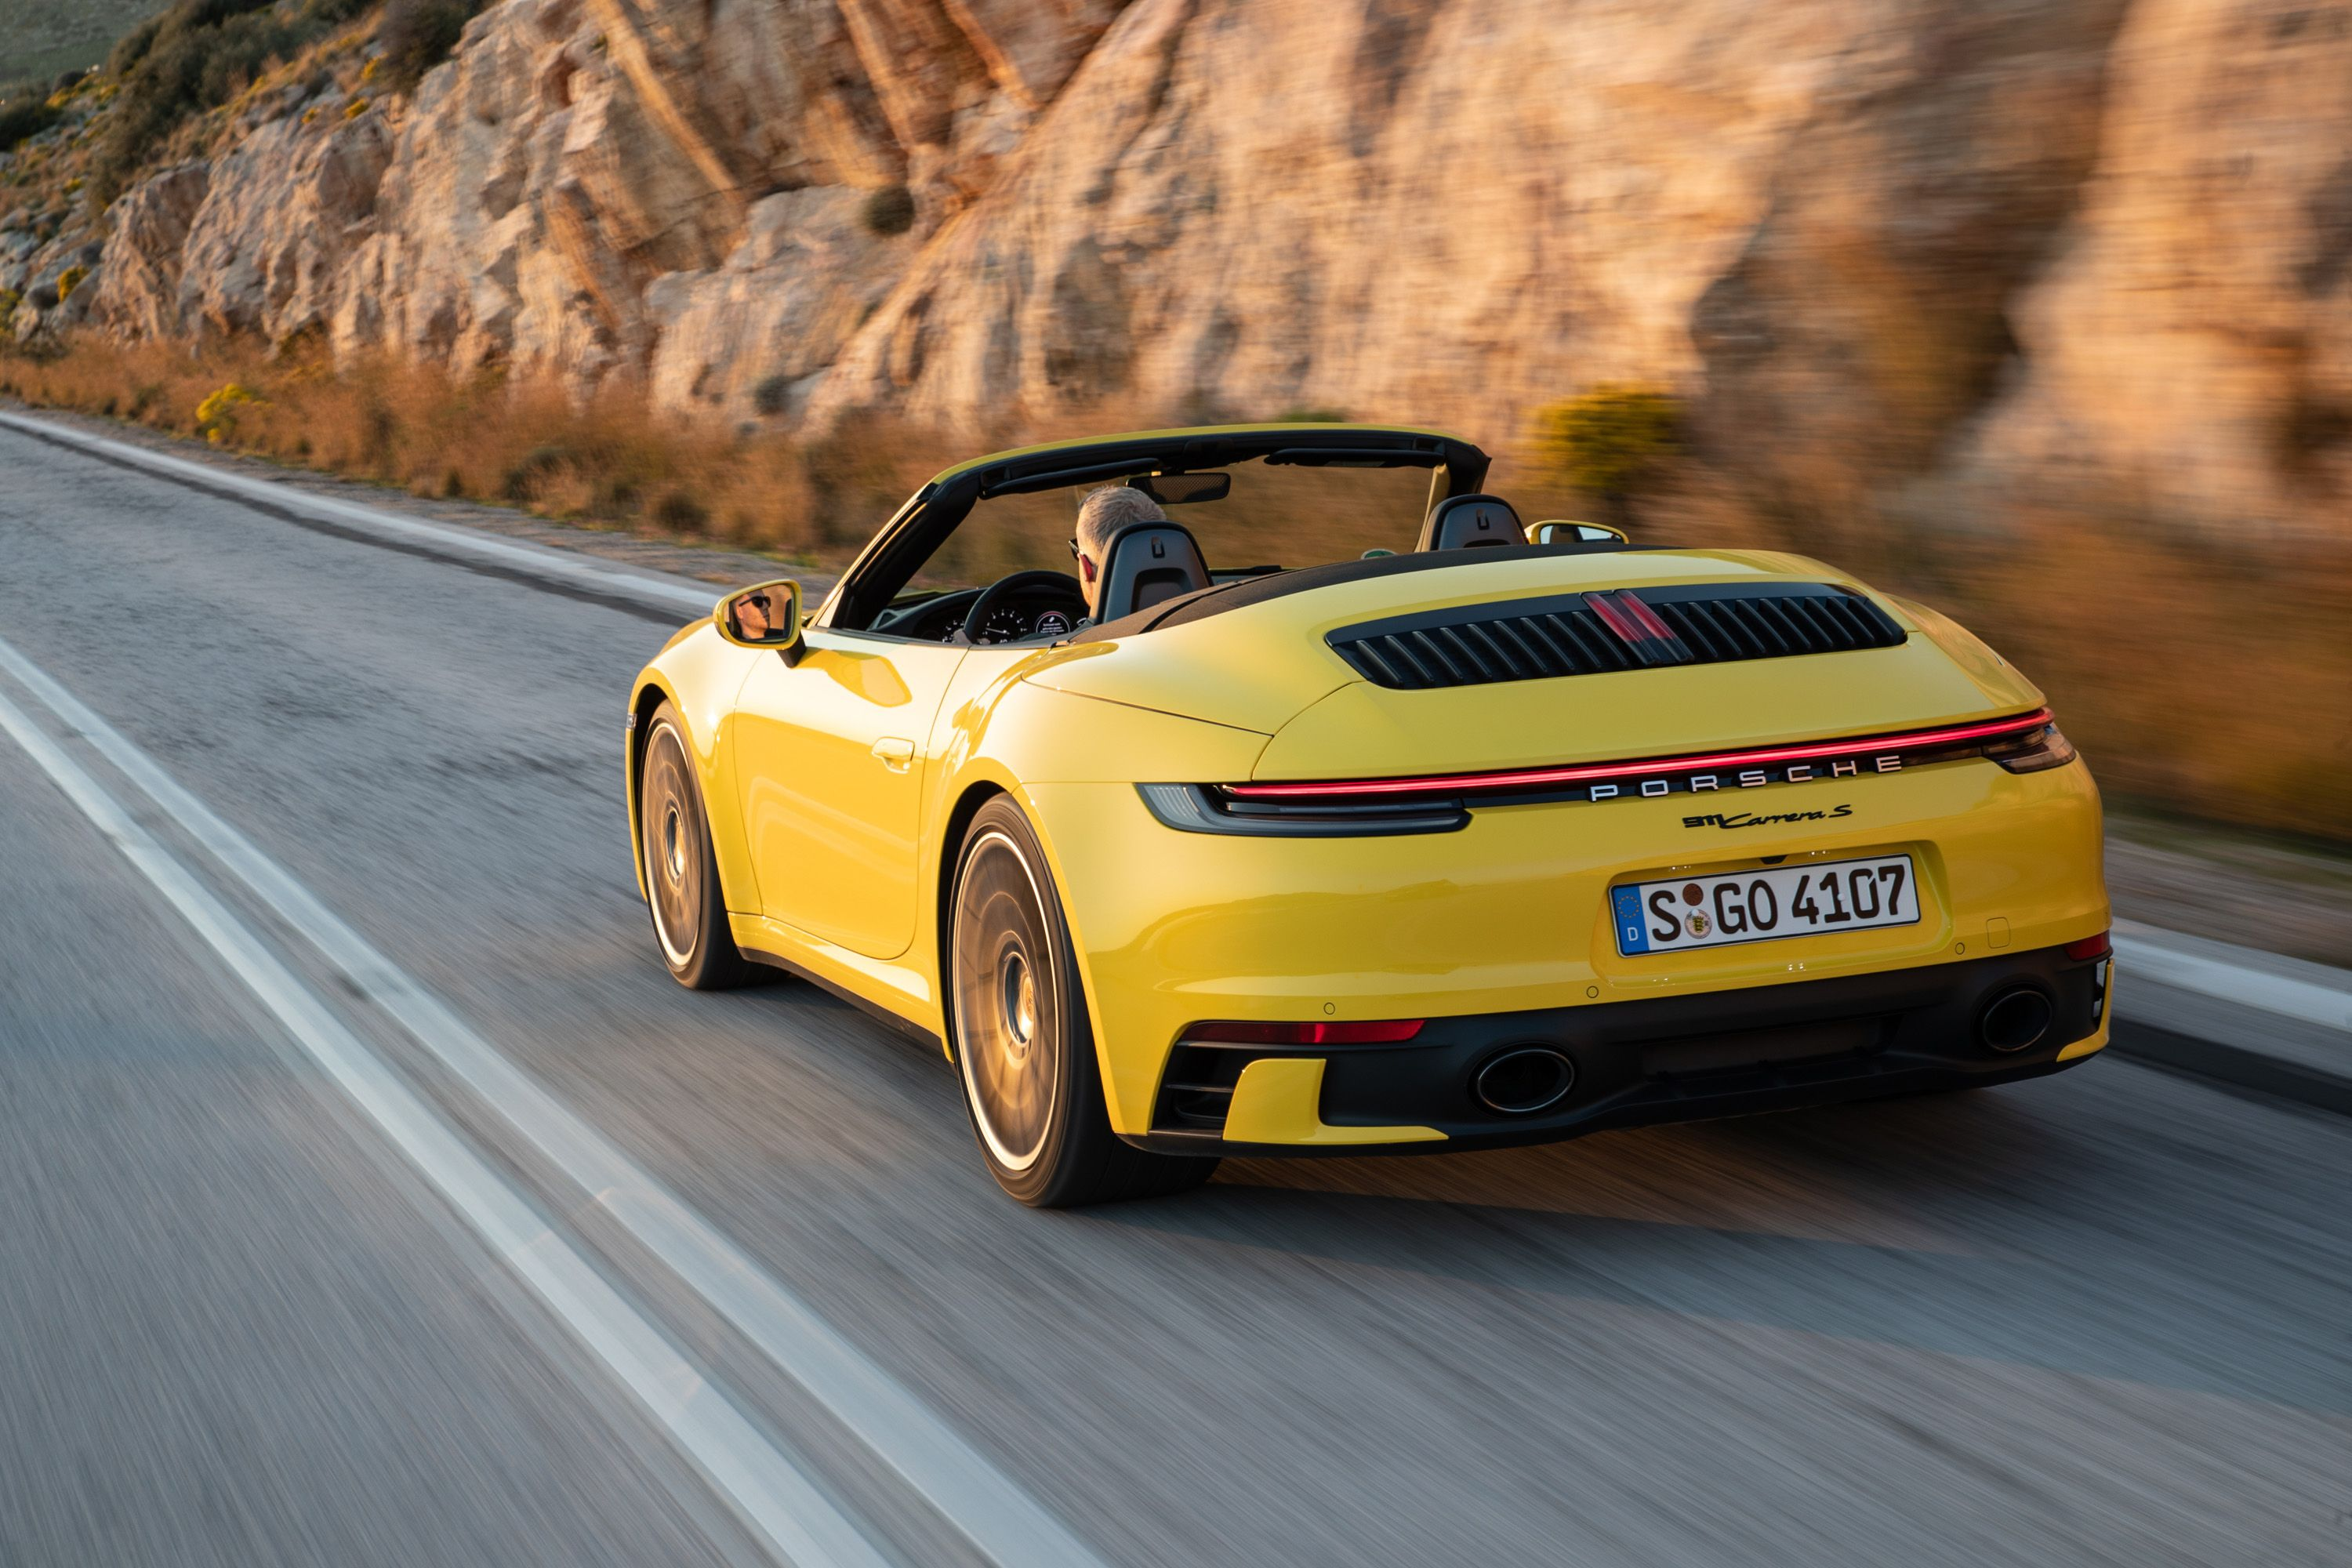 Porsche 911 Turbo Cabriolet best big